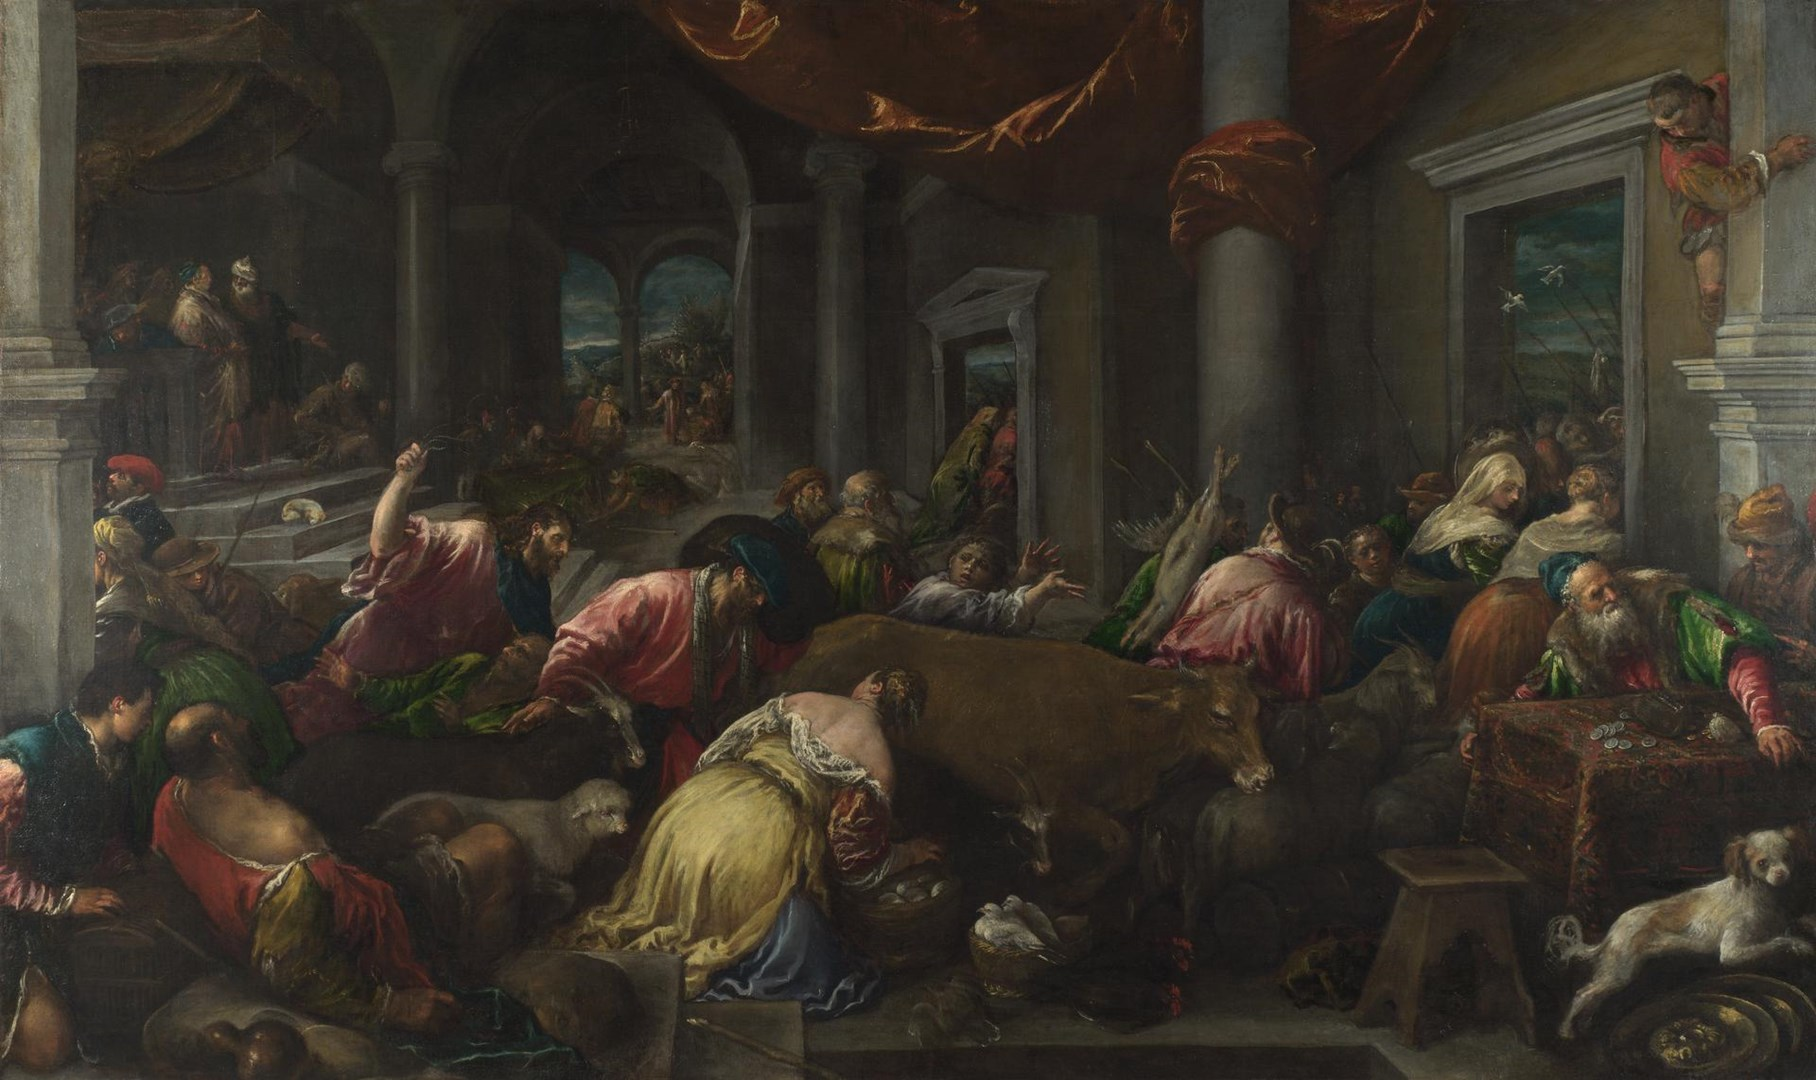 The Purification of the Temple by Jacopo Bassano and workshop